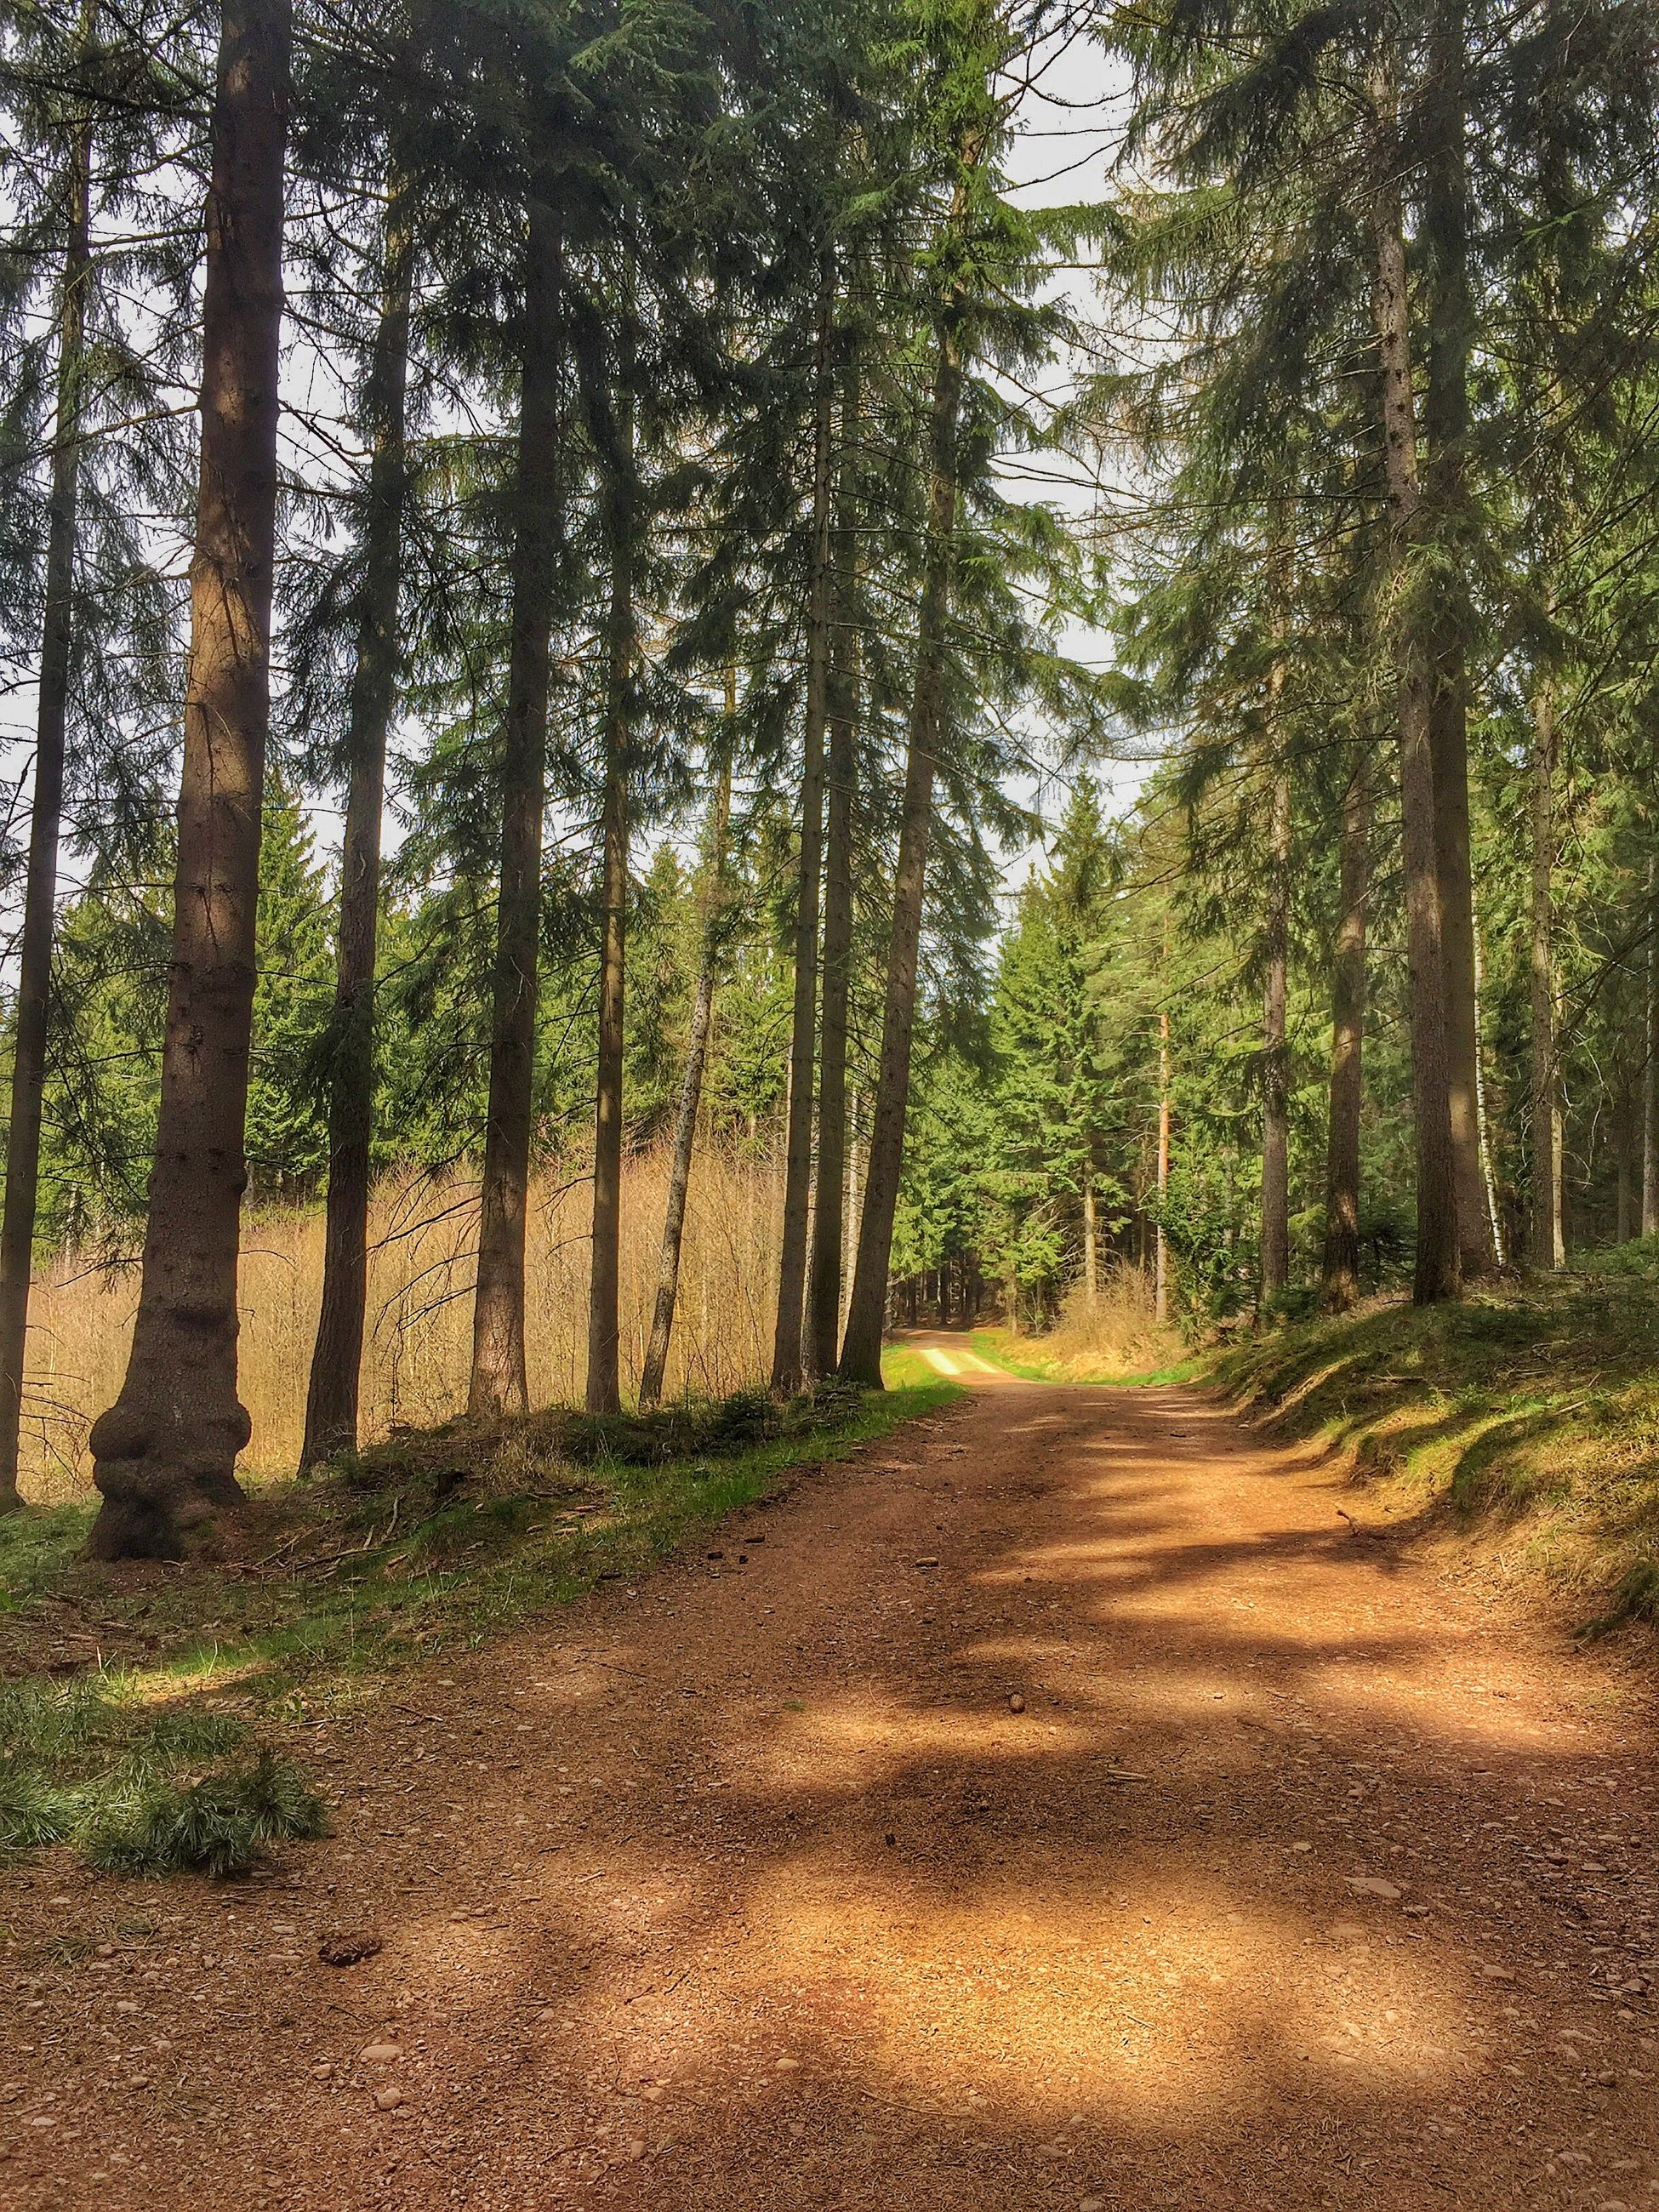 tree, the way forward, tranquility, tree trunk, tranquil scene, growth, dirt road, nature, forest, diminishing perspective, landscape, beauty in nature, treelined, scenics, vanishing point, woodland, footpath, sunlight, non-urban scene, day